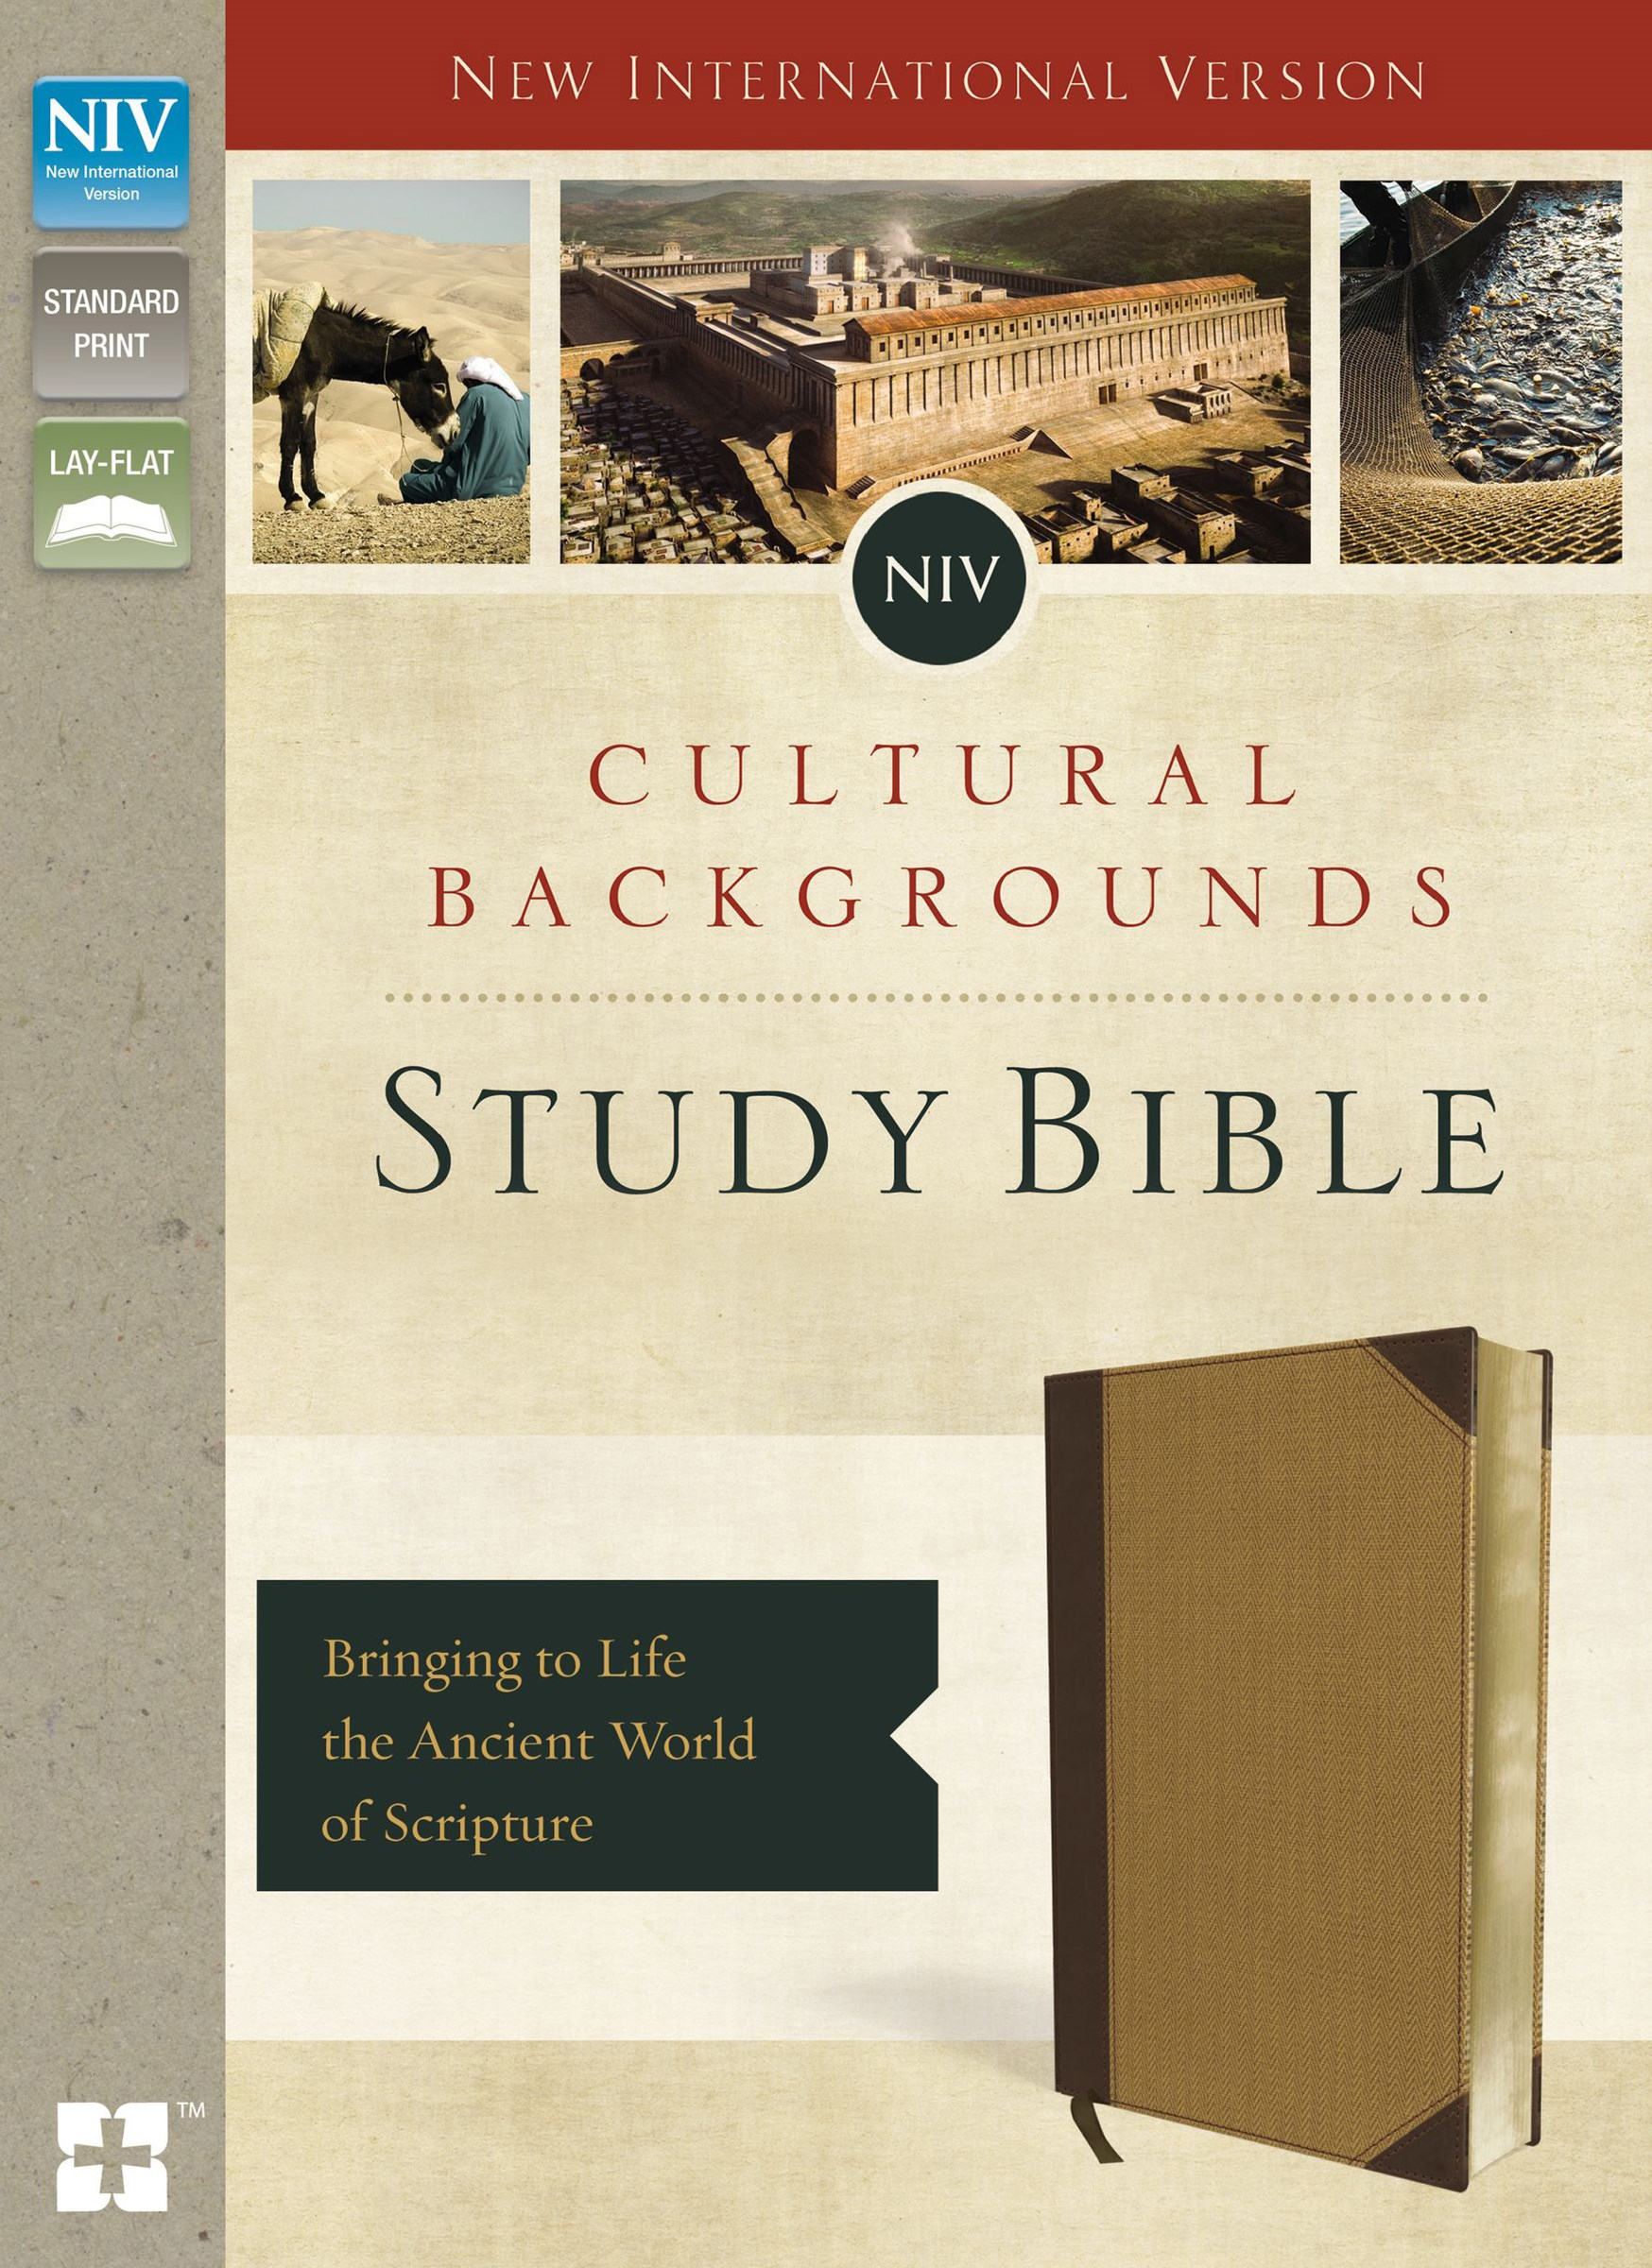 NIV, Cultural Backgrounds Study Bible, Indexed: Bringing To Life The Ancient World Of Scripture [Italian Duo-Tone Brown/Tan]